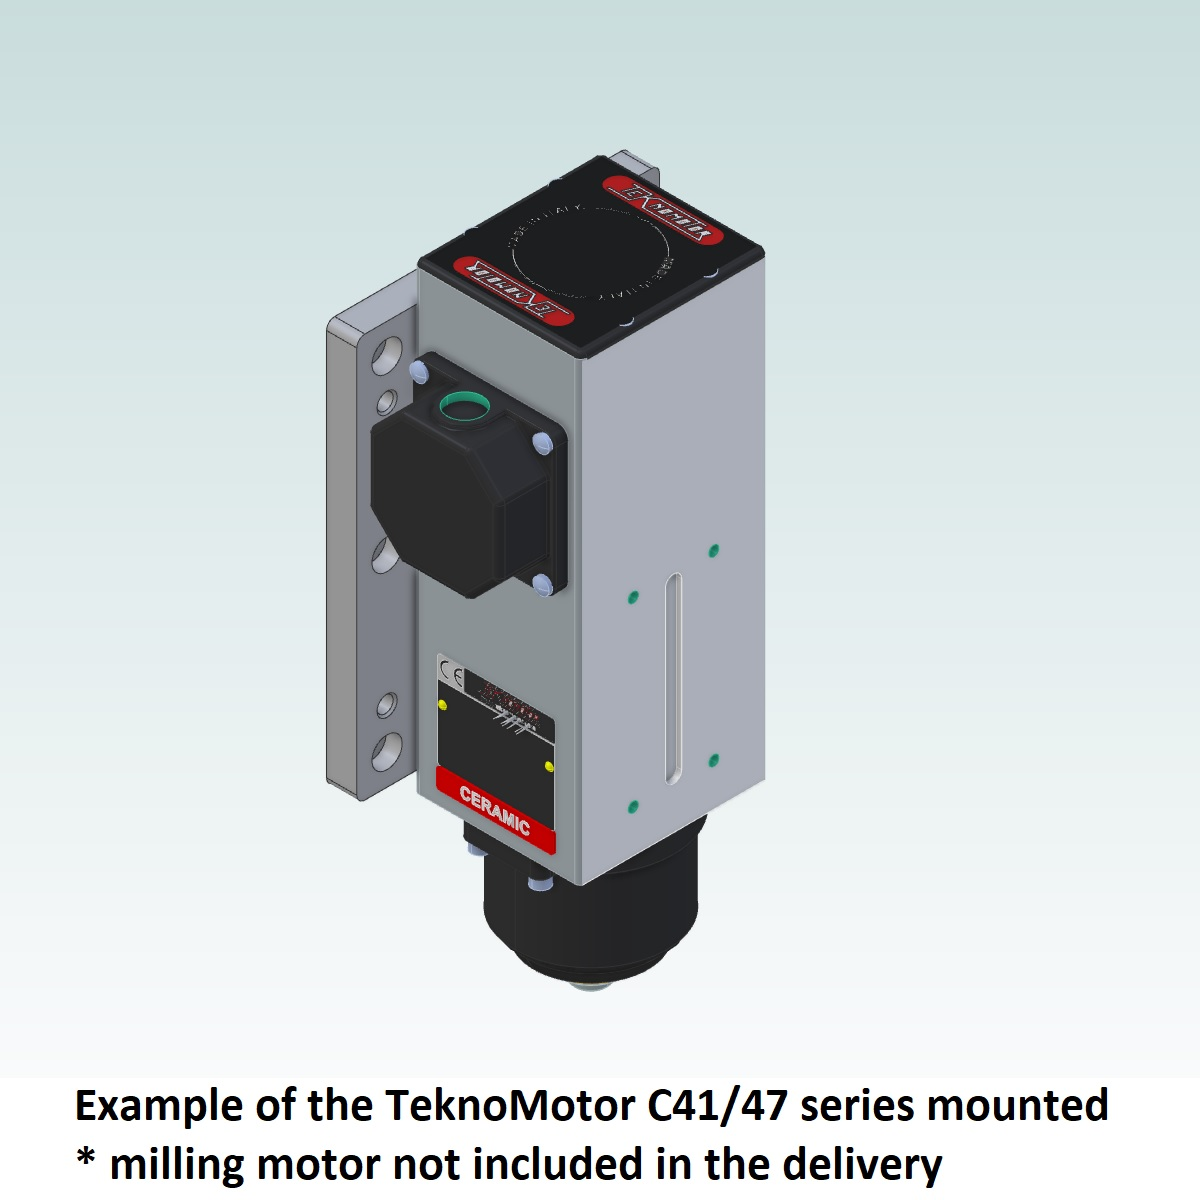 8994 teknomotor mountplate for 40x160 profile with c4147 mounted